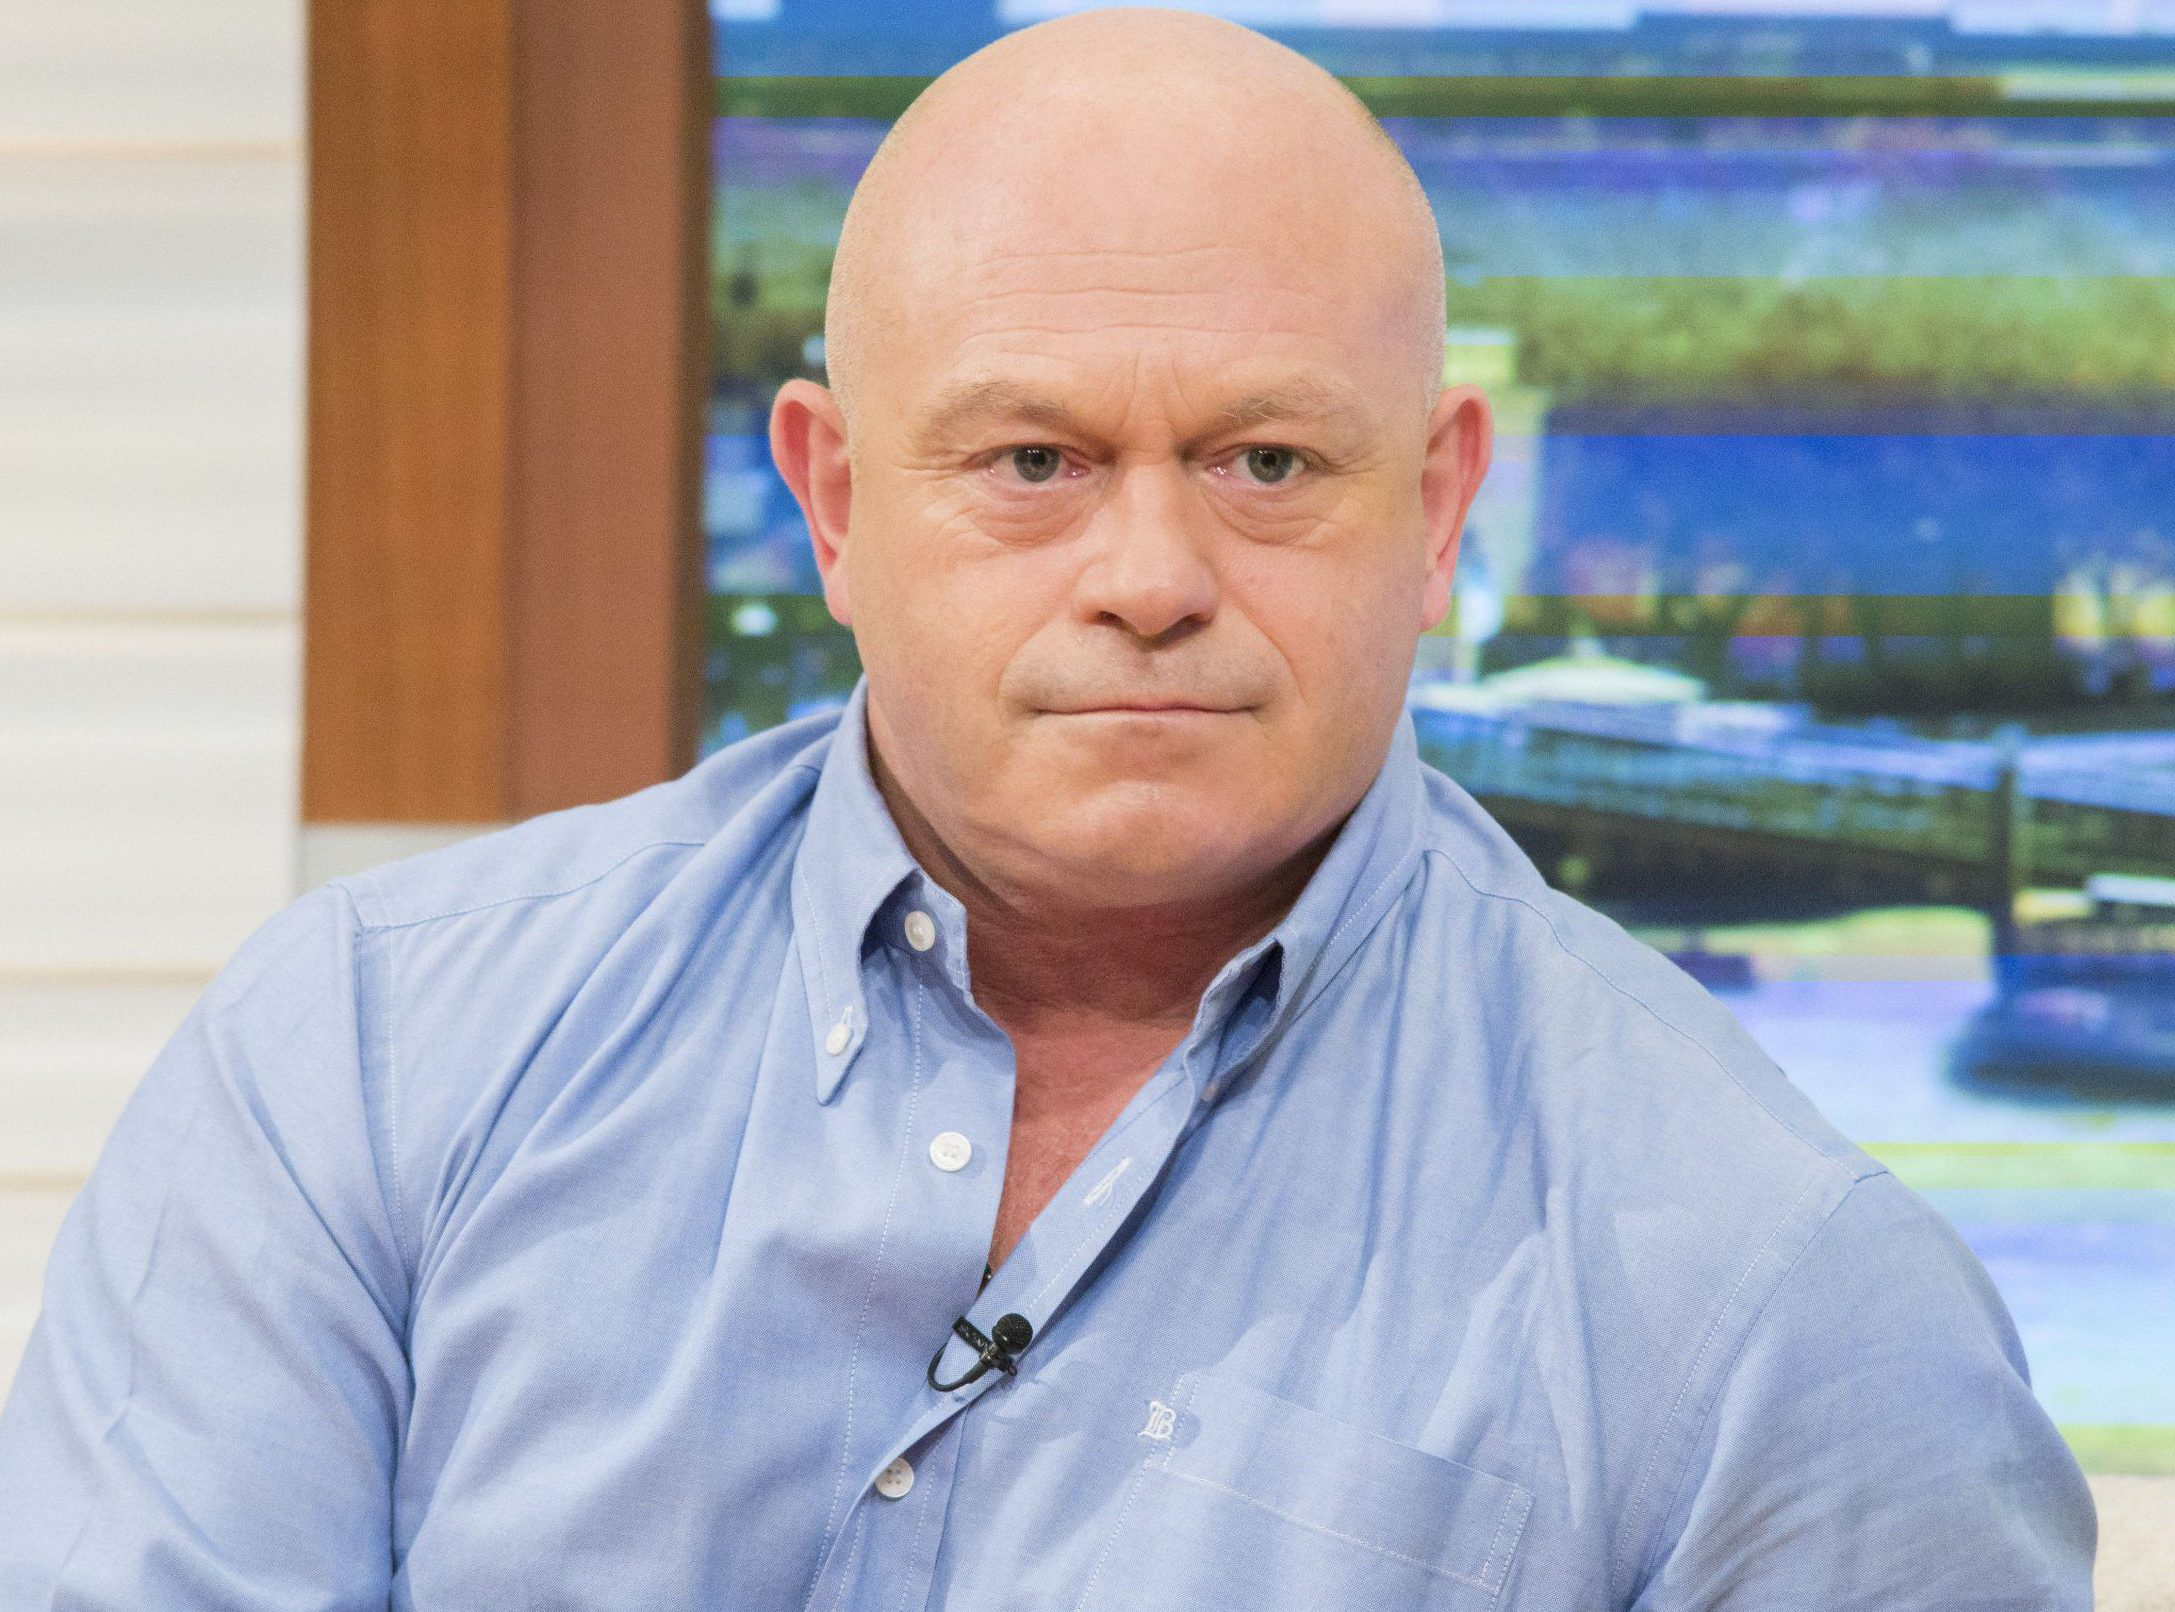 Ross Kemp admits he was very 'vain' on EastEnders despite being 'follicly challenged'